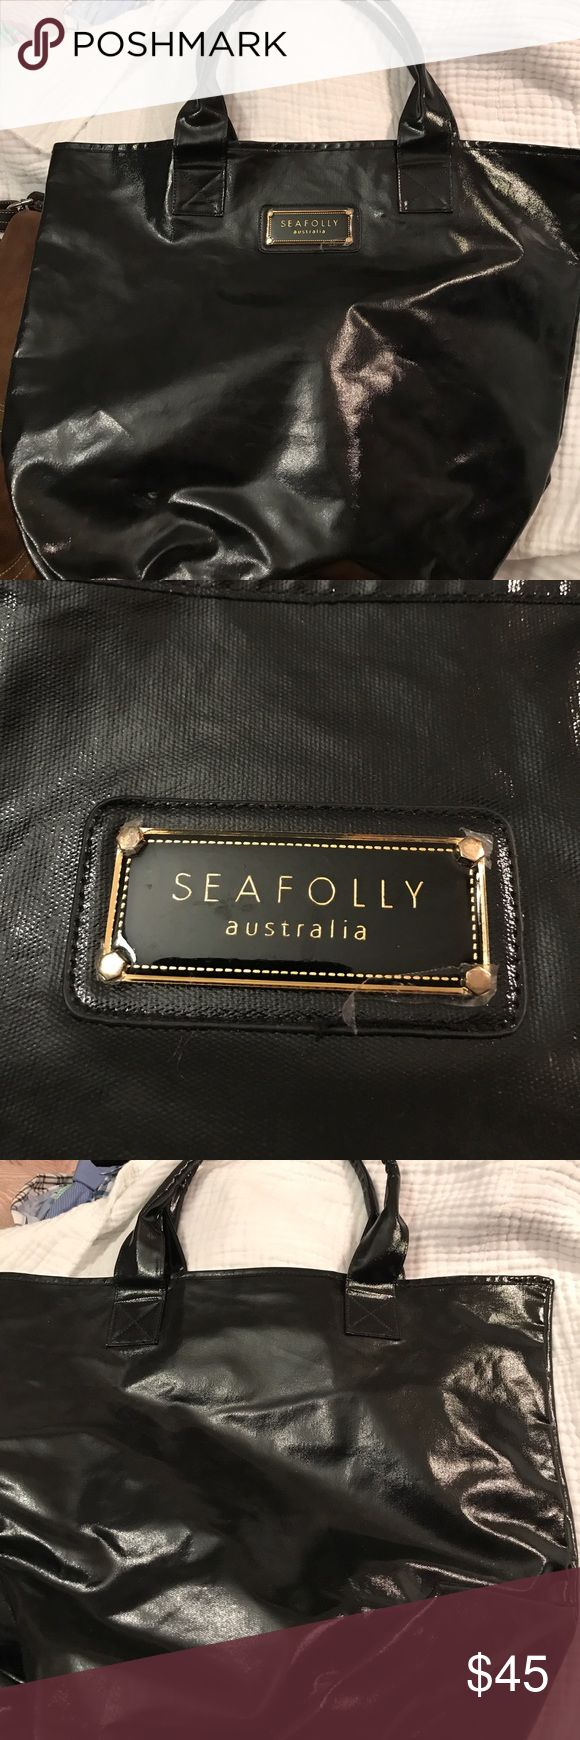 SEAFOLLY AUSTRALIA BLACK TEXTURED PATENT TOTE BAG 🎓⭐️🎓🎓COLLEGE FUNDRAISER 🎓⭐️🎓🎓SEAFOLLY AUSTRALIA BLACK TEXTURED PATENT BIGBAG-its gigantic--it's like new--shiny like material GIGANTIC TOTE BIG BAG Seafolly Bags Totes